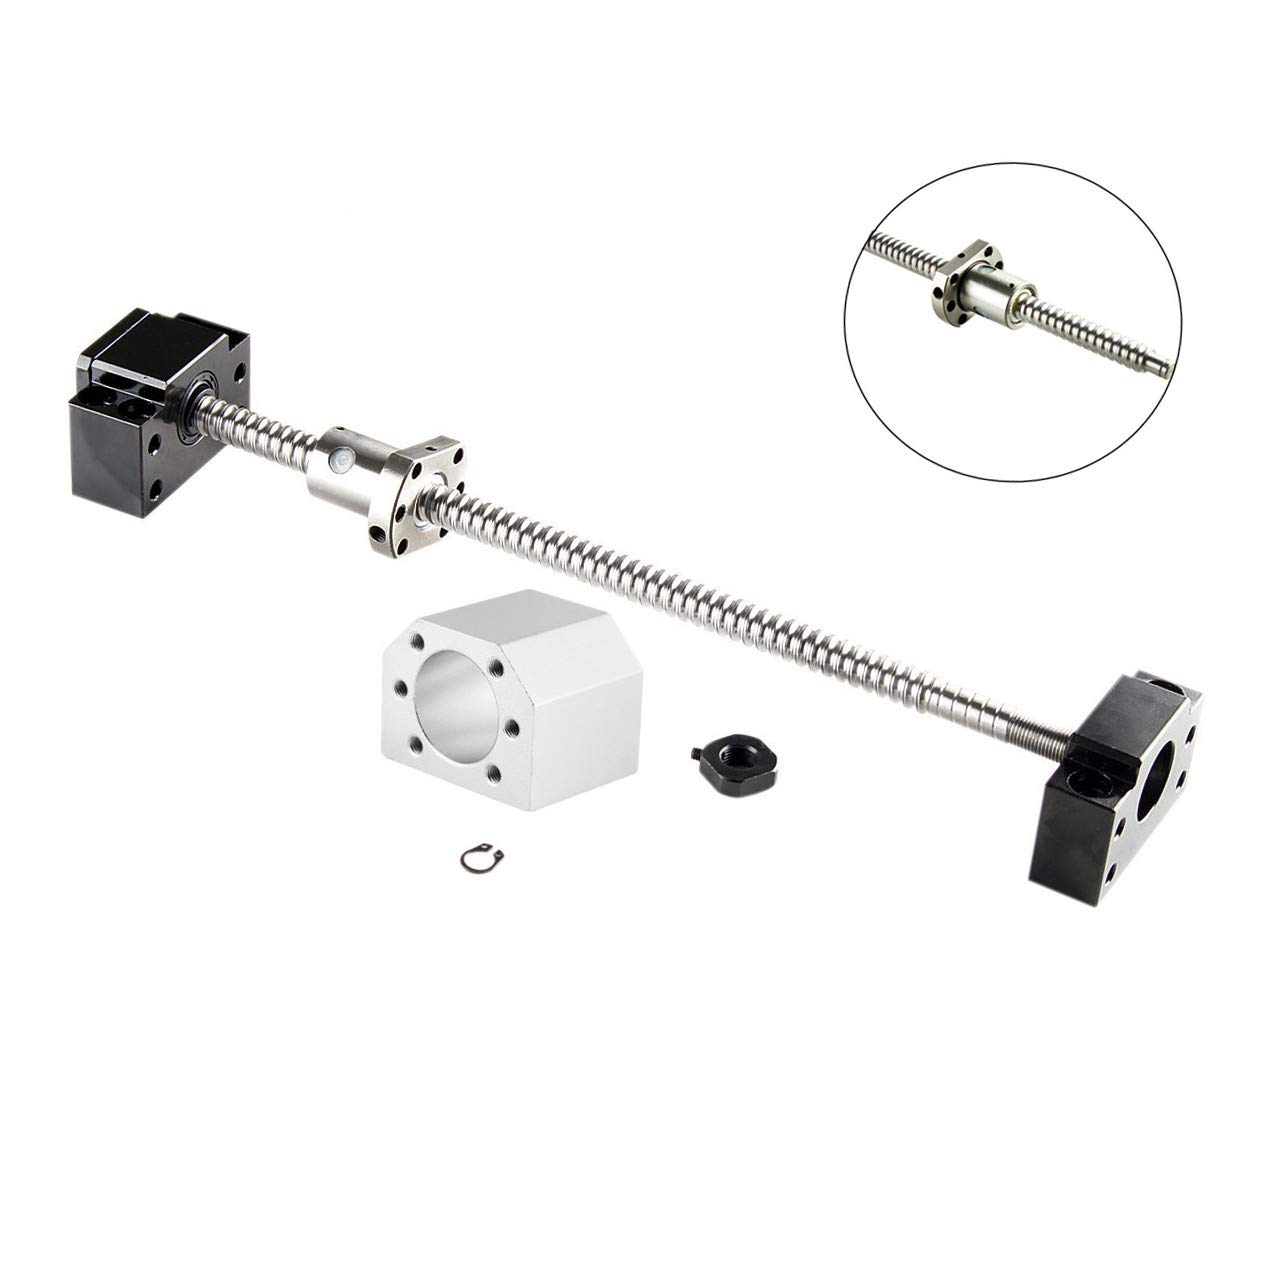 SFU2005-600mm Ballscrew with Metal Max 48% OFF Deflector Nut S BK + Indianapolis Mall BF15 End